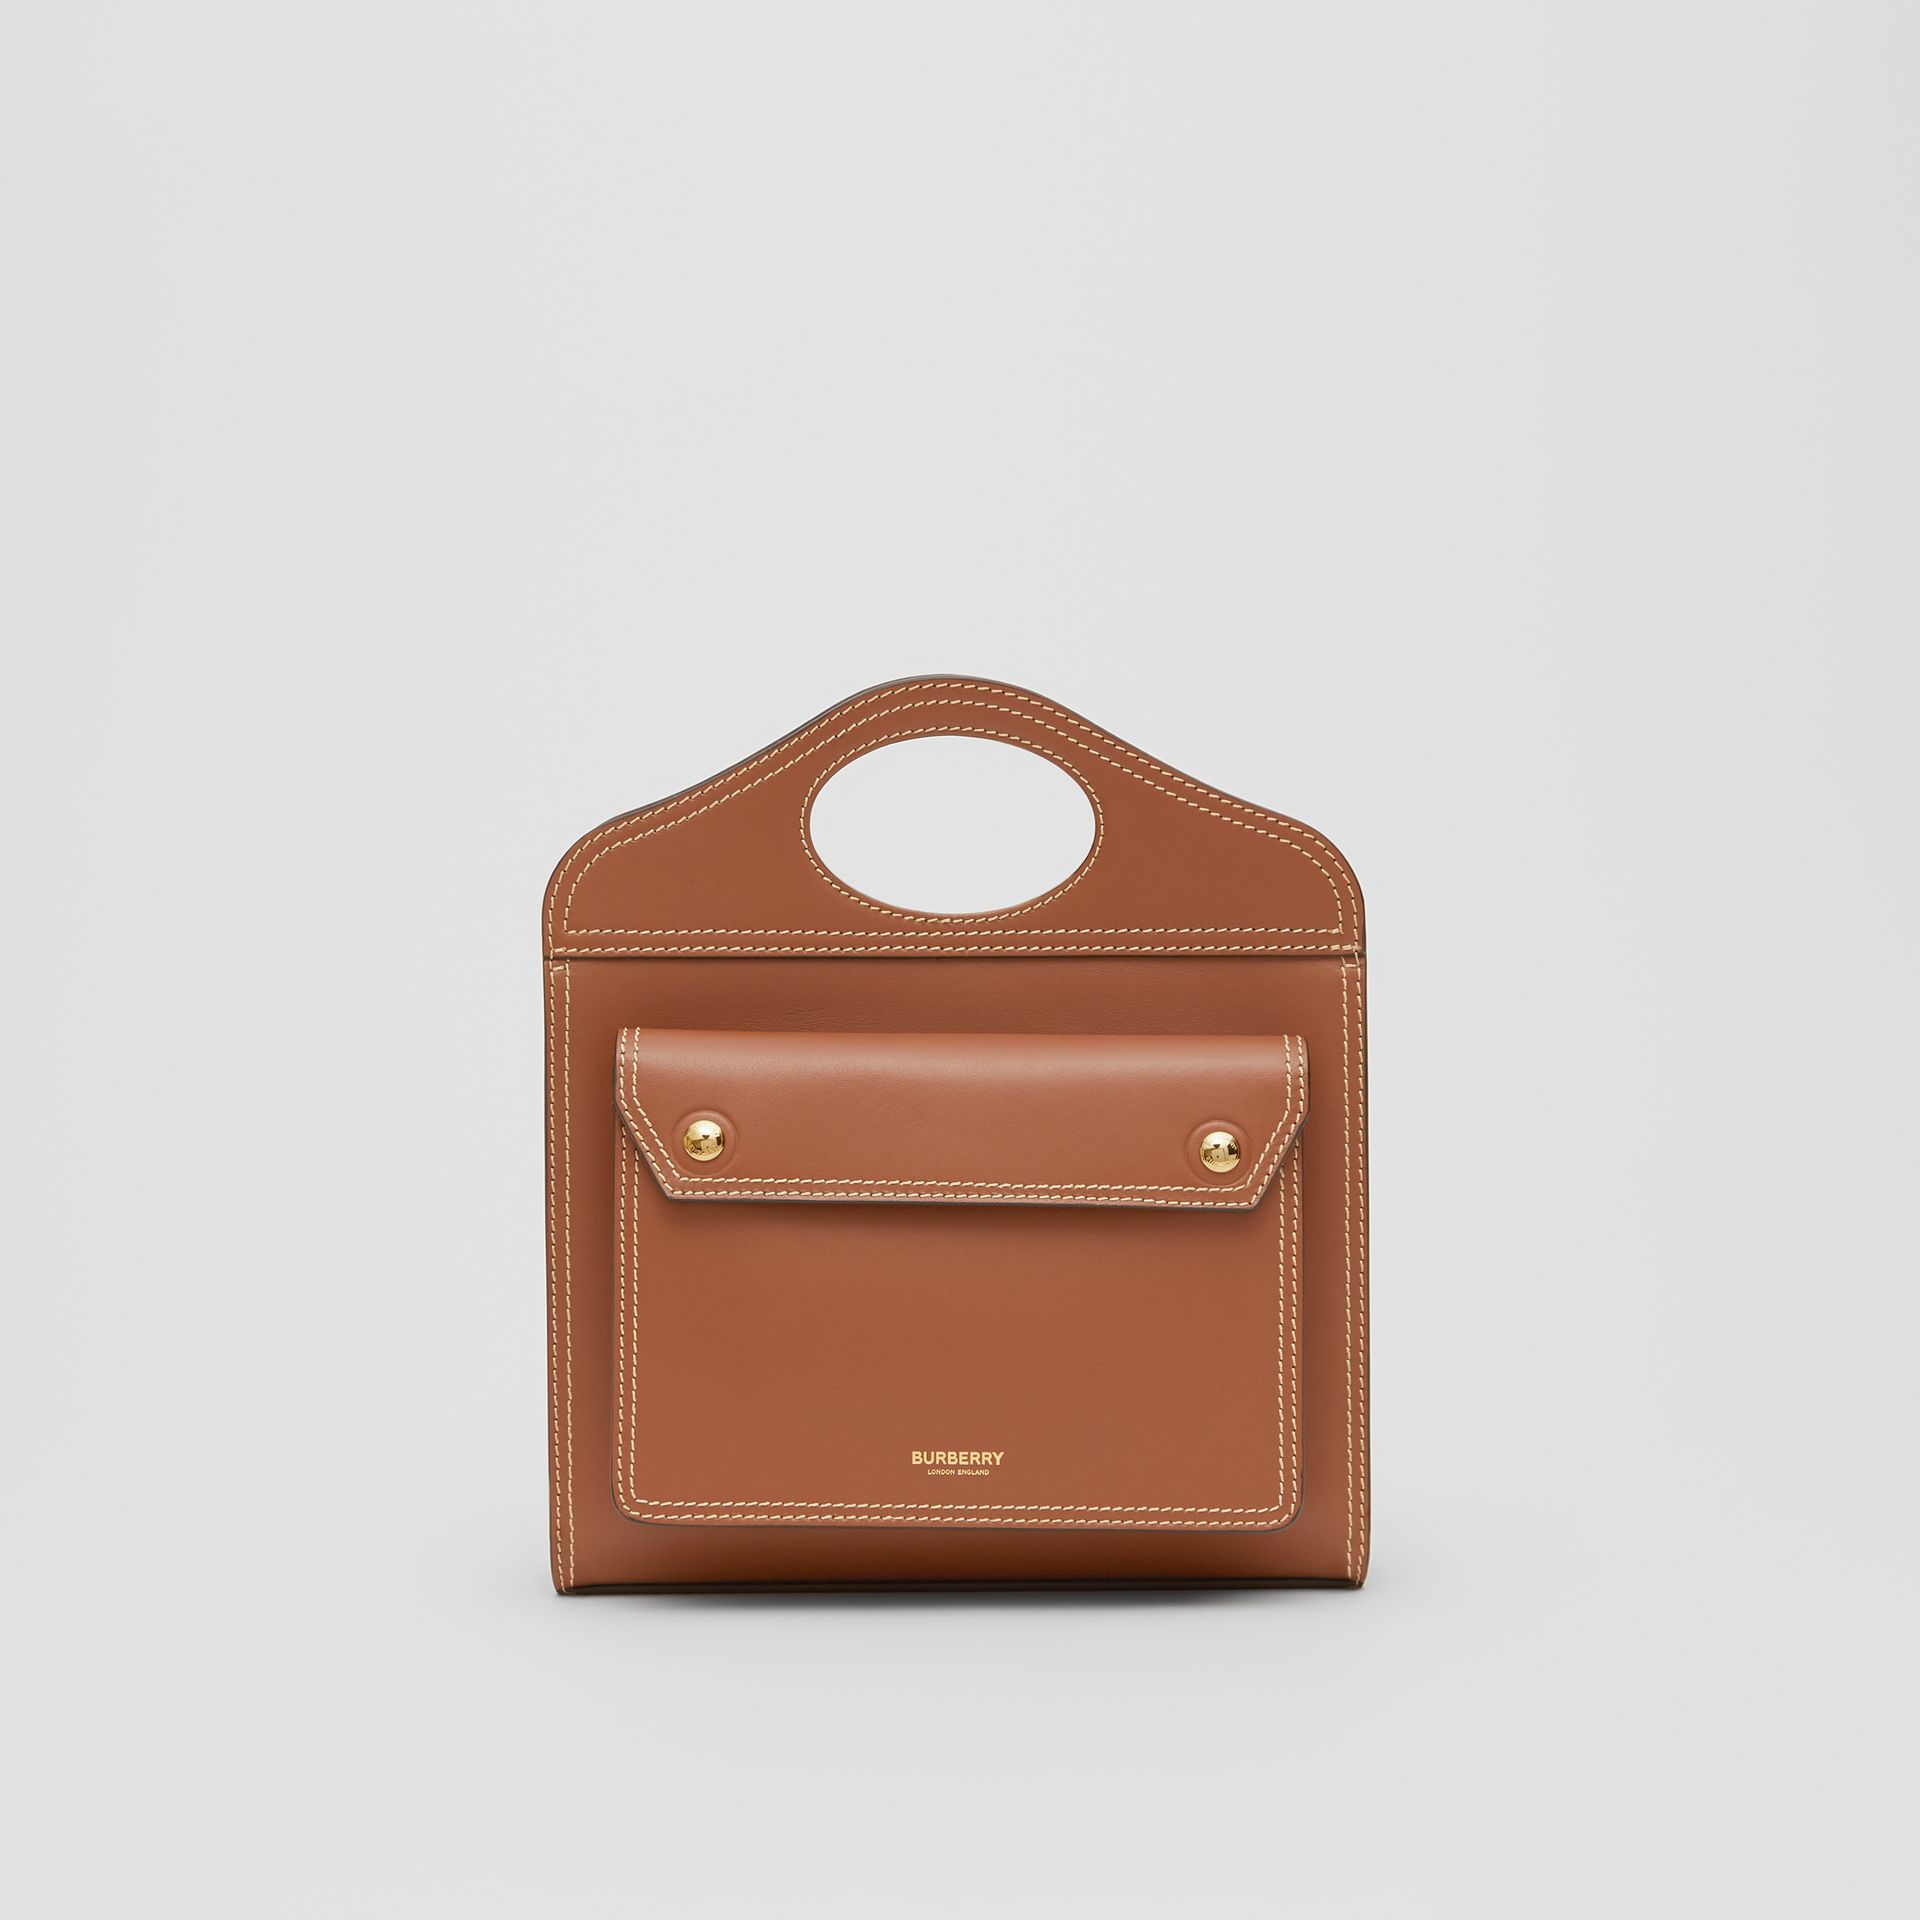 Mini Topstitched Leather Pocket Bag in Malt Brown - Women | Burberry United States - gallery image 0